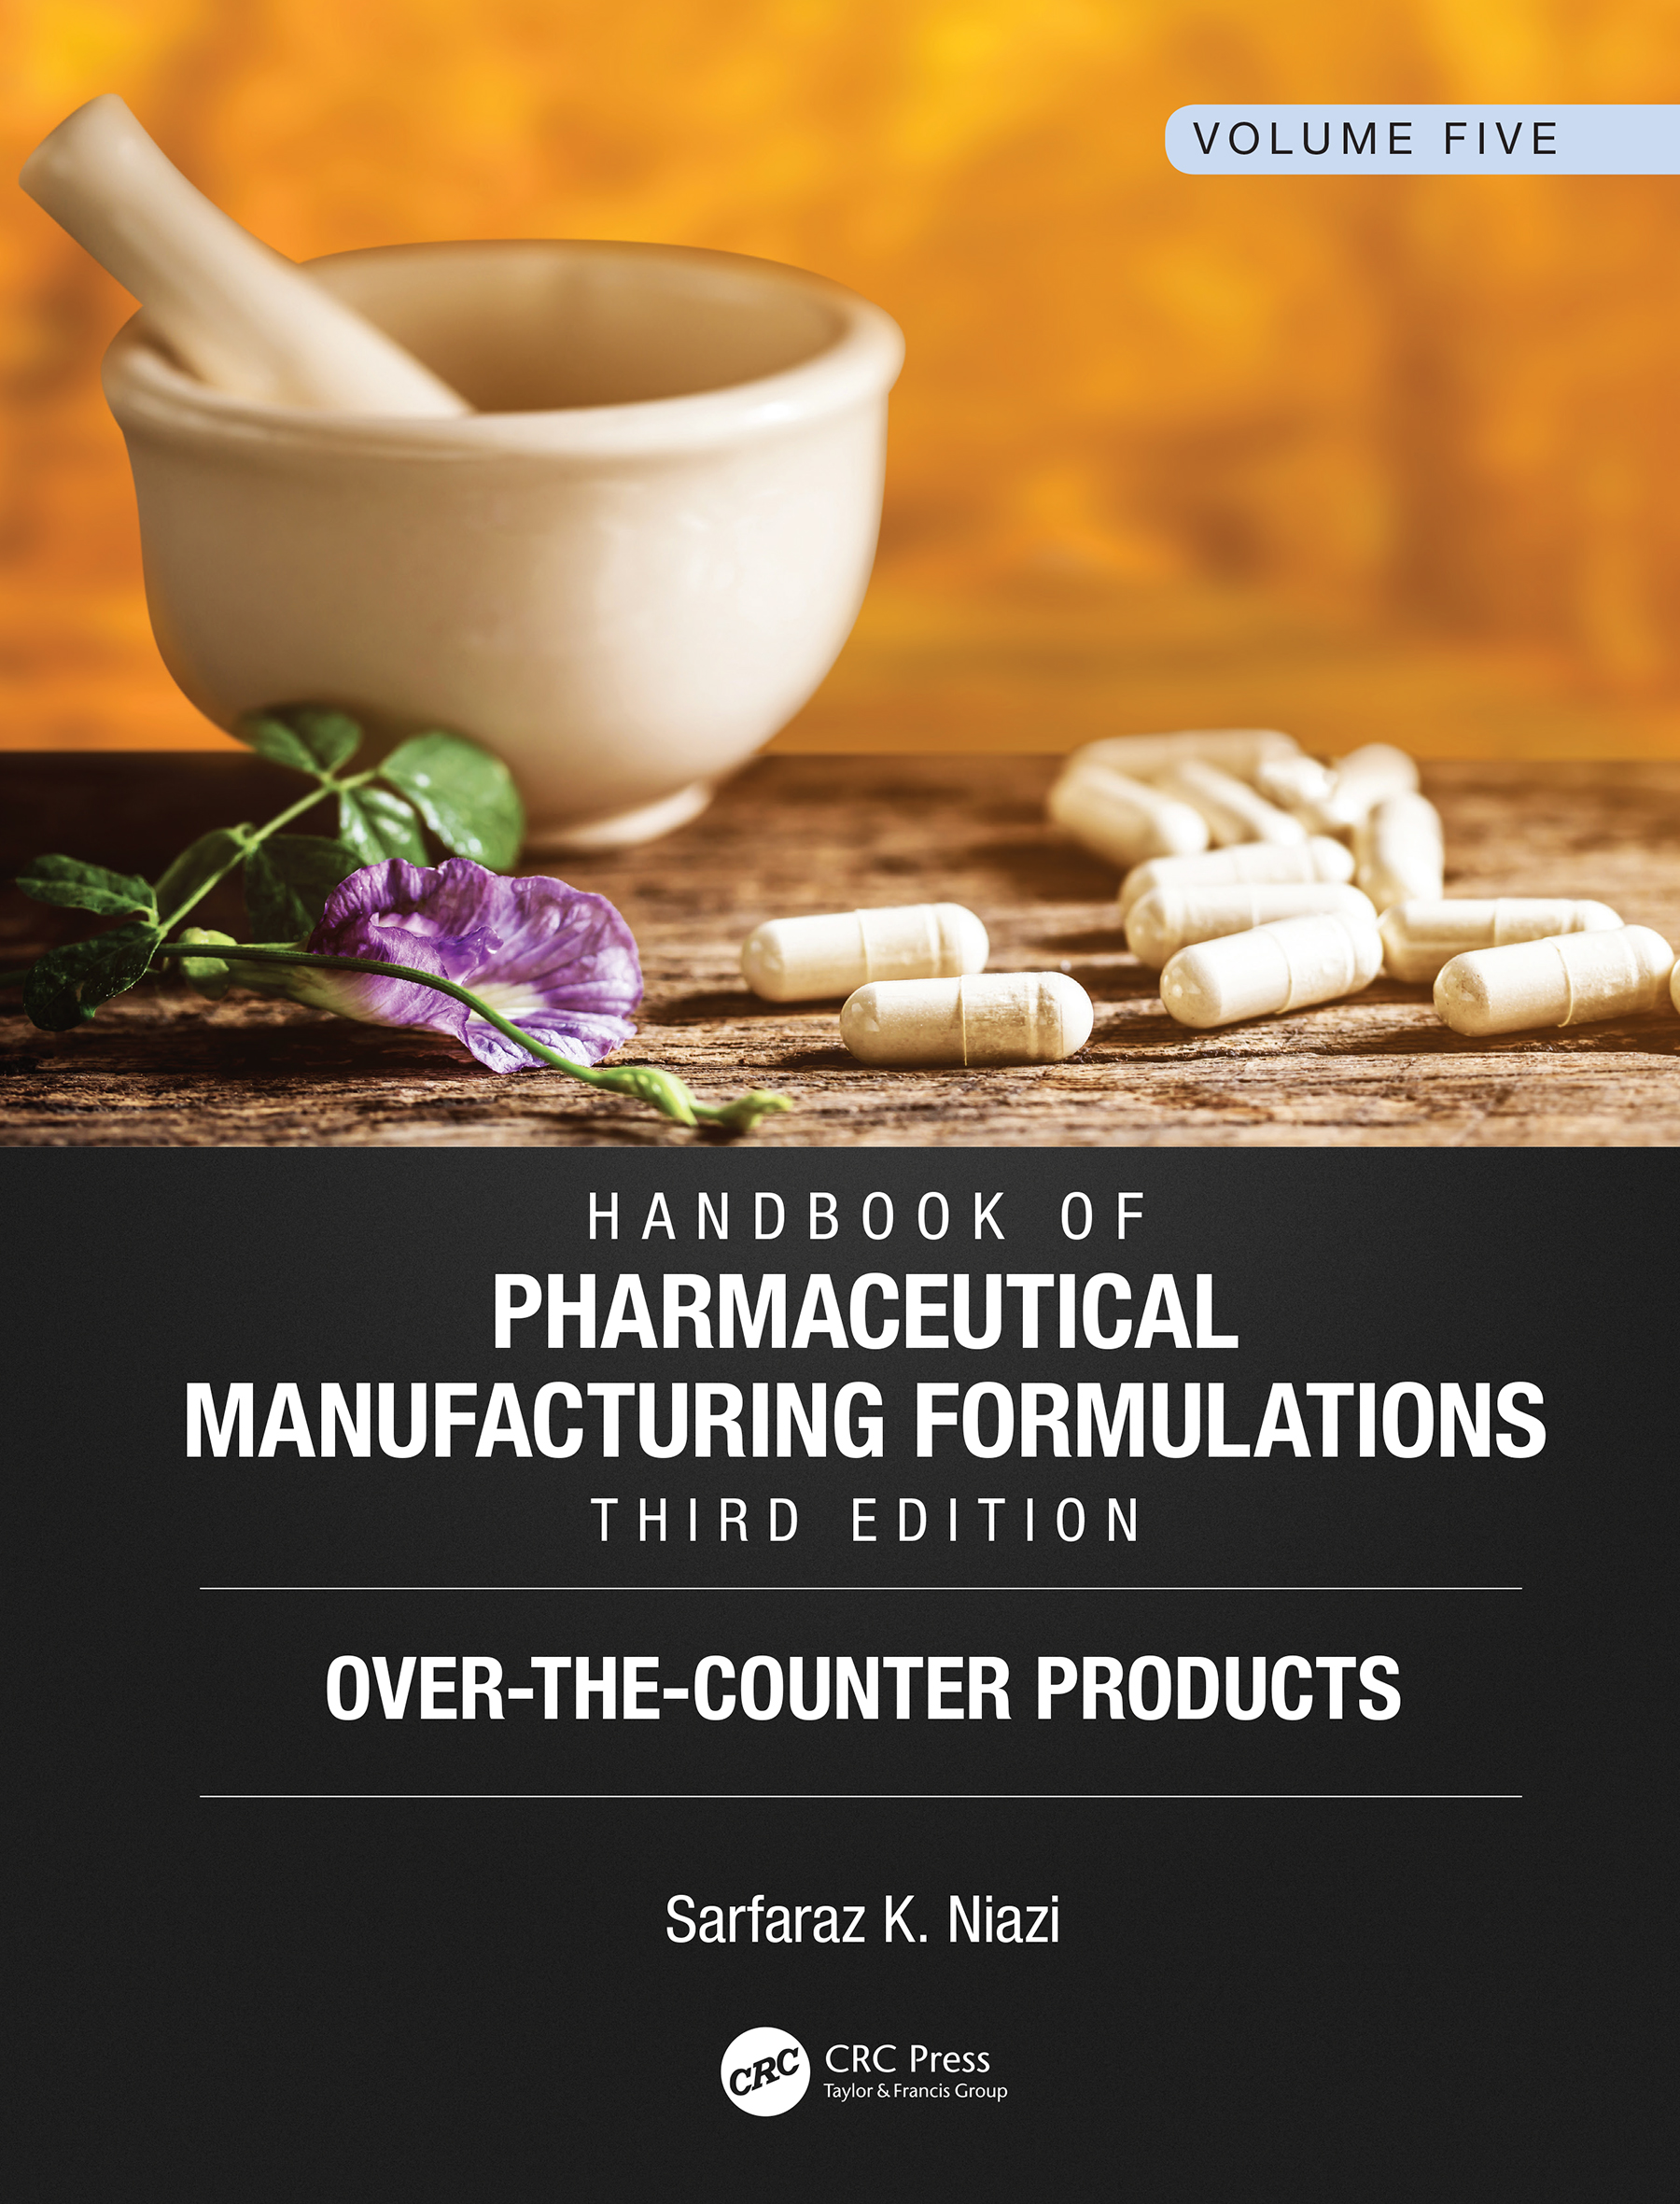 Handbook of Pharmaceutical Manufacturing Formulations, Third Edition: Volume Five, Over-the-Counter Products book cover